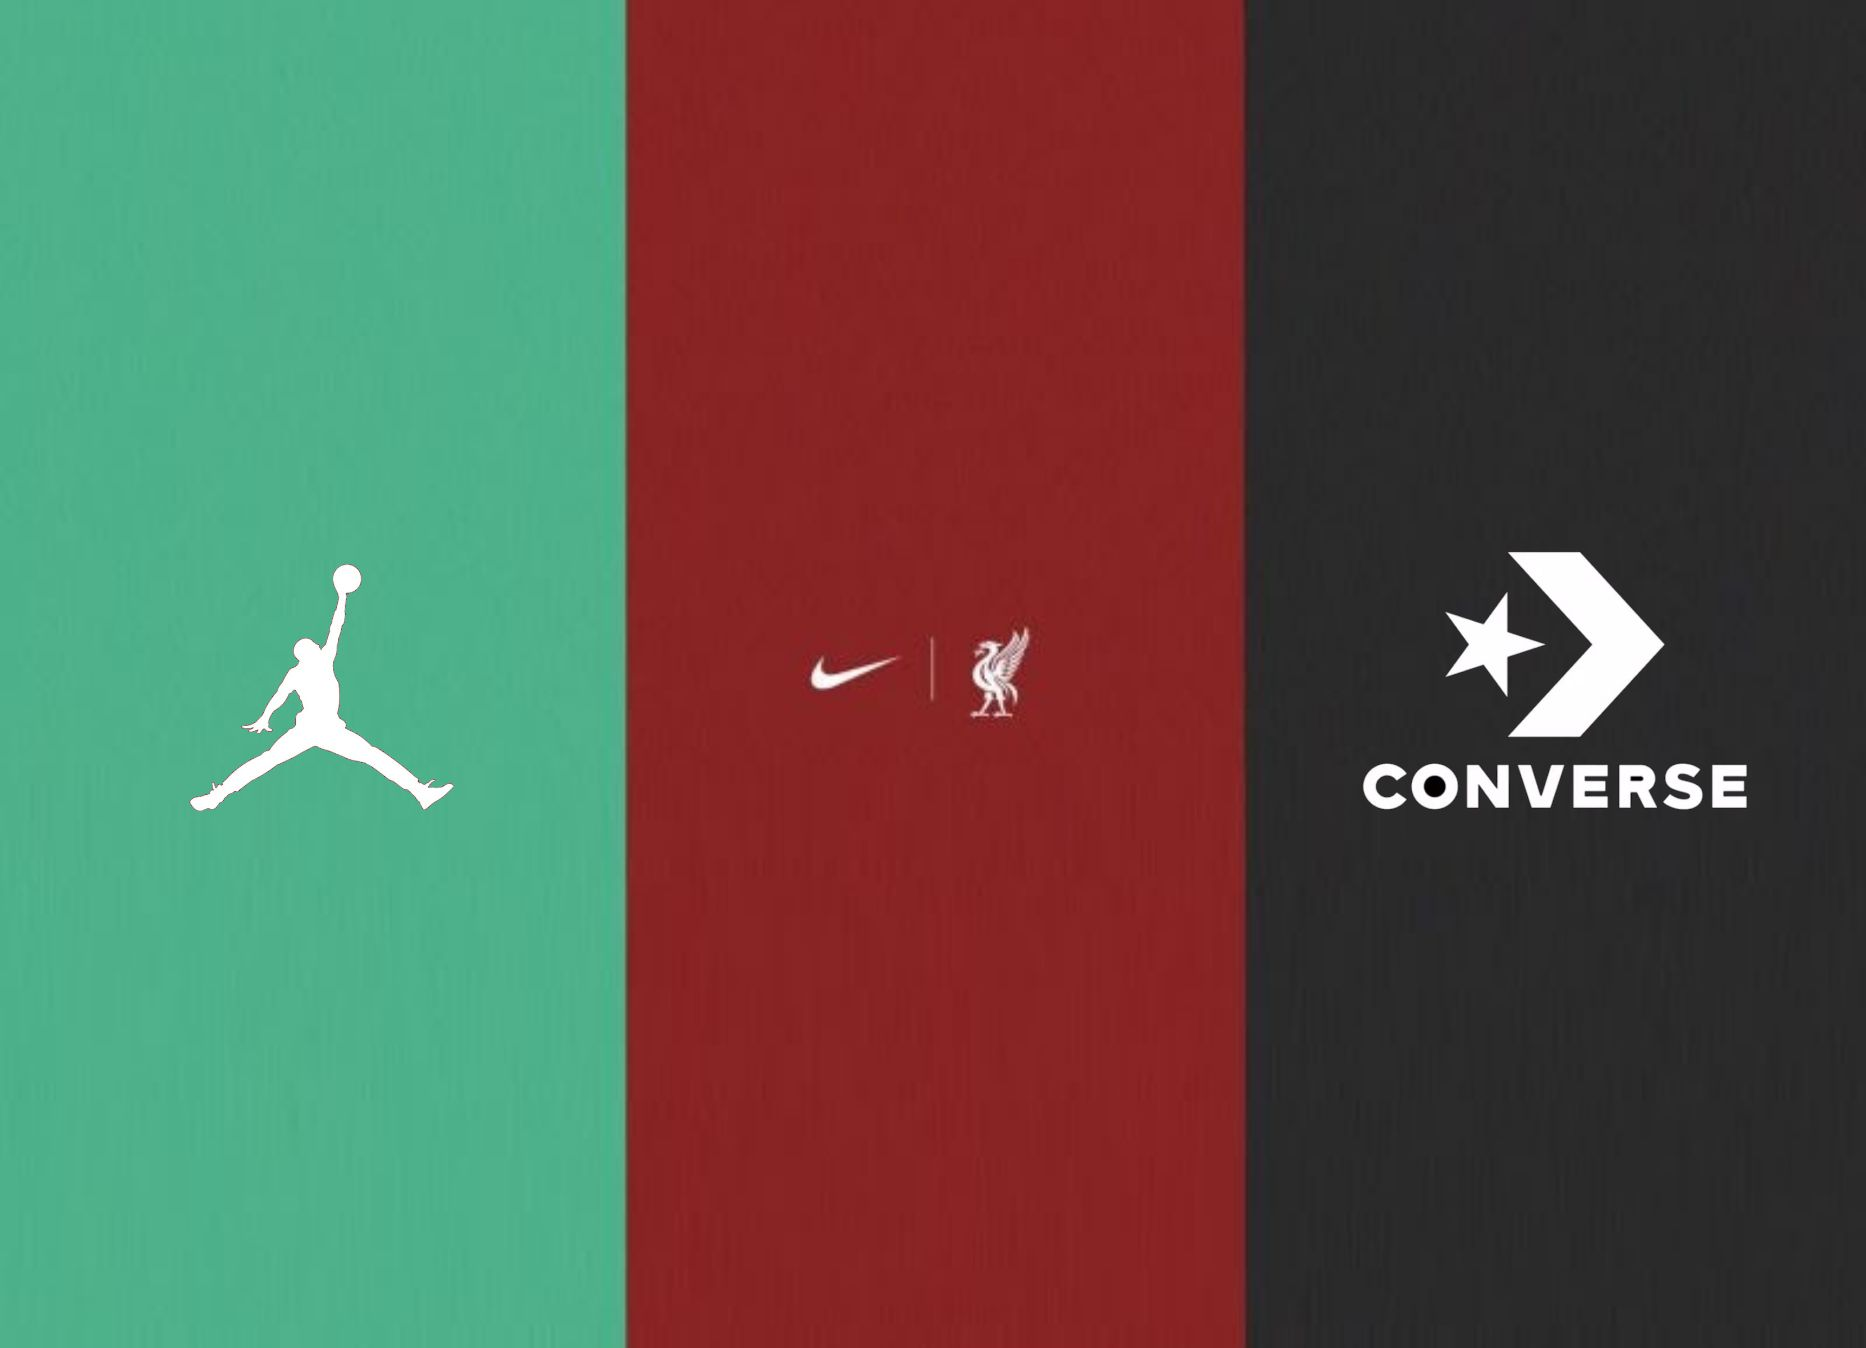 Nike set to release Converse / Jordan and US club collab collection with LFC branding – Footy Headlines